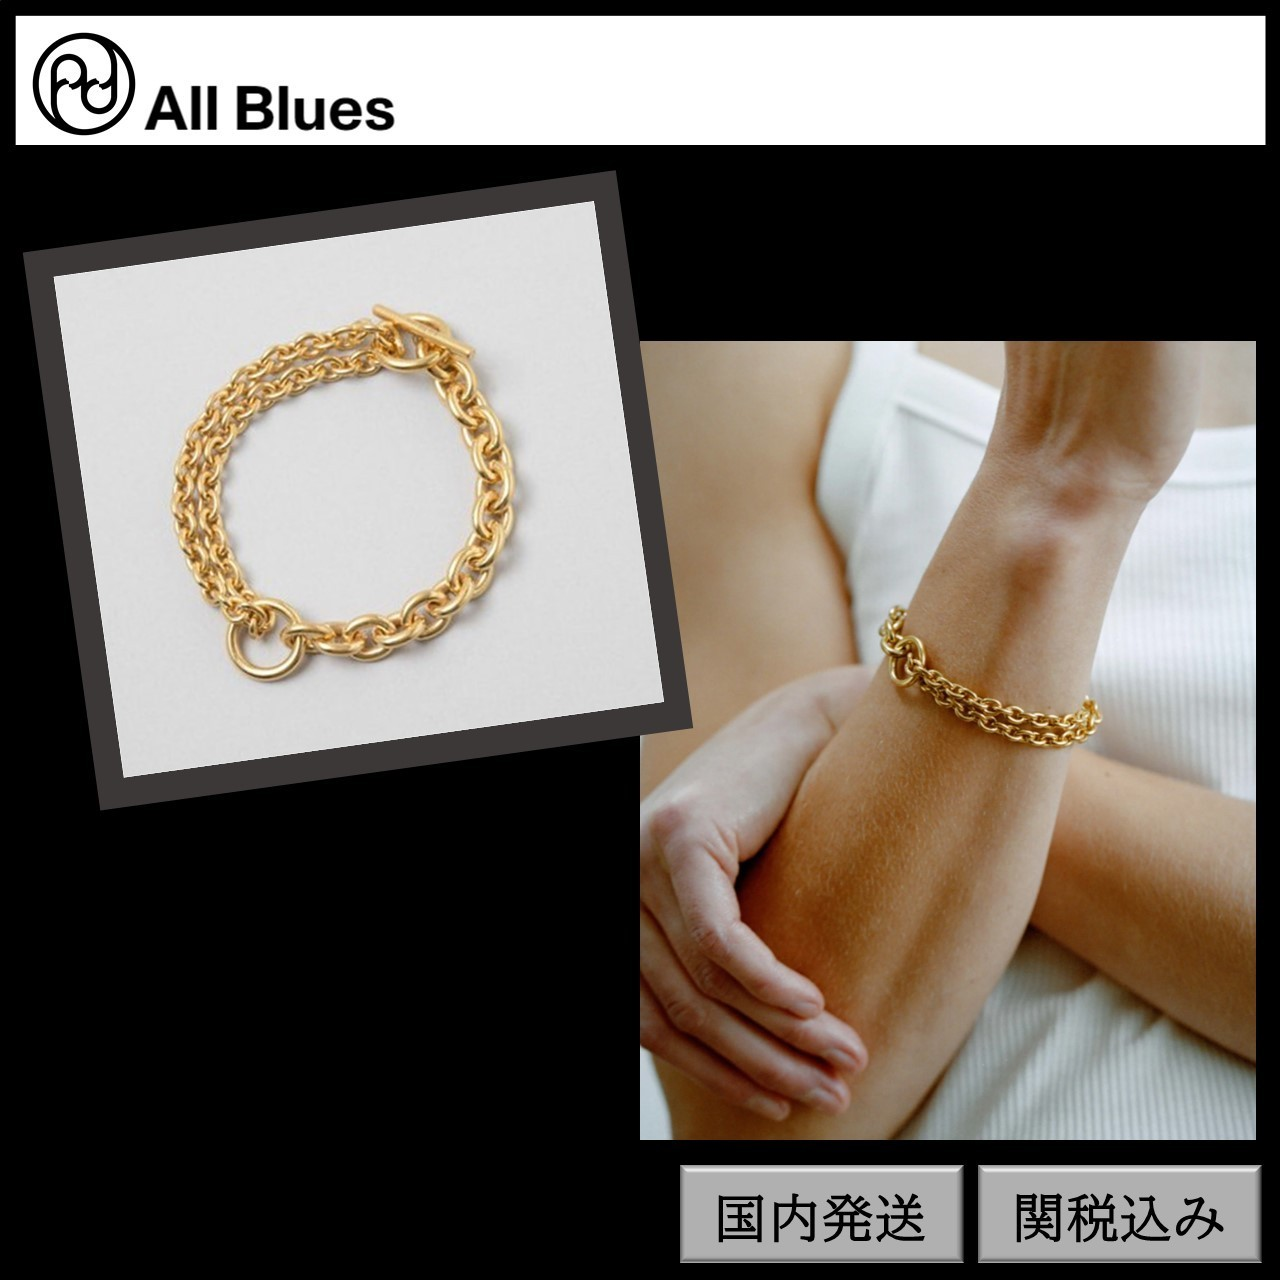 【All Blues】選べるサイズXS-L☆Double bracelet Polished gold (All Blues/ブレスレット) 68355347